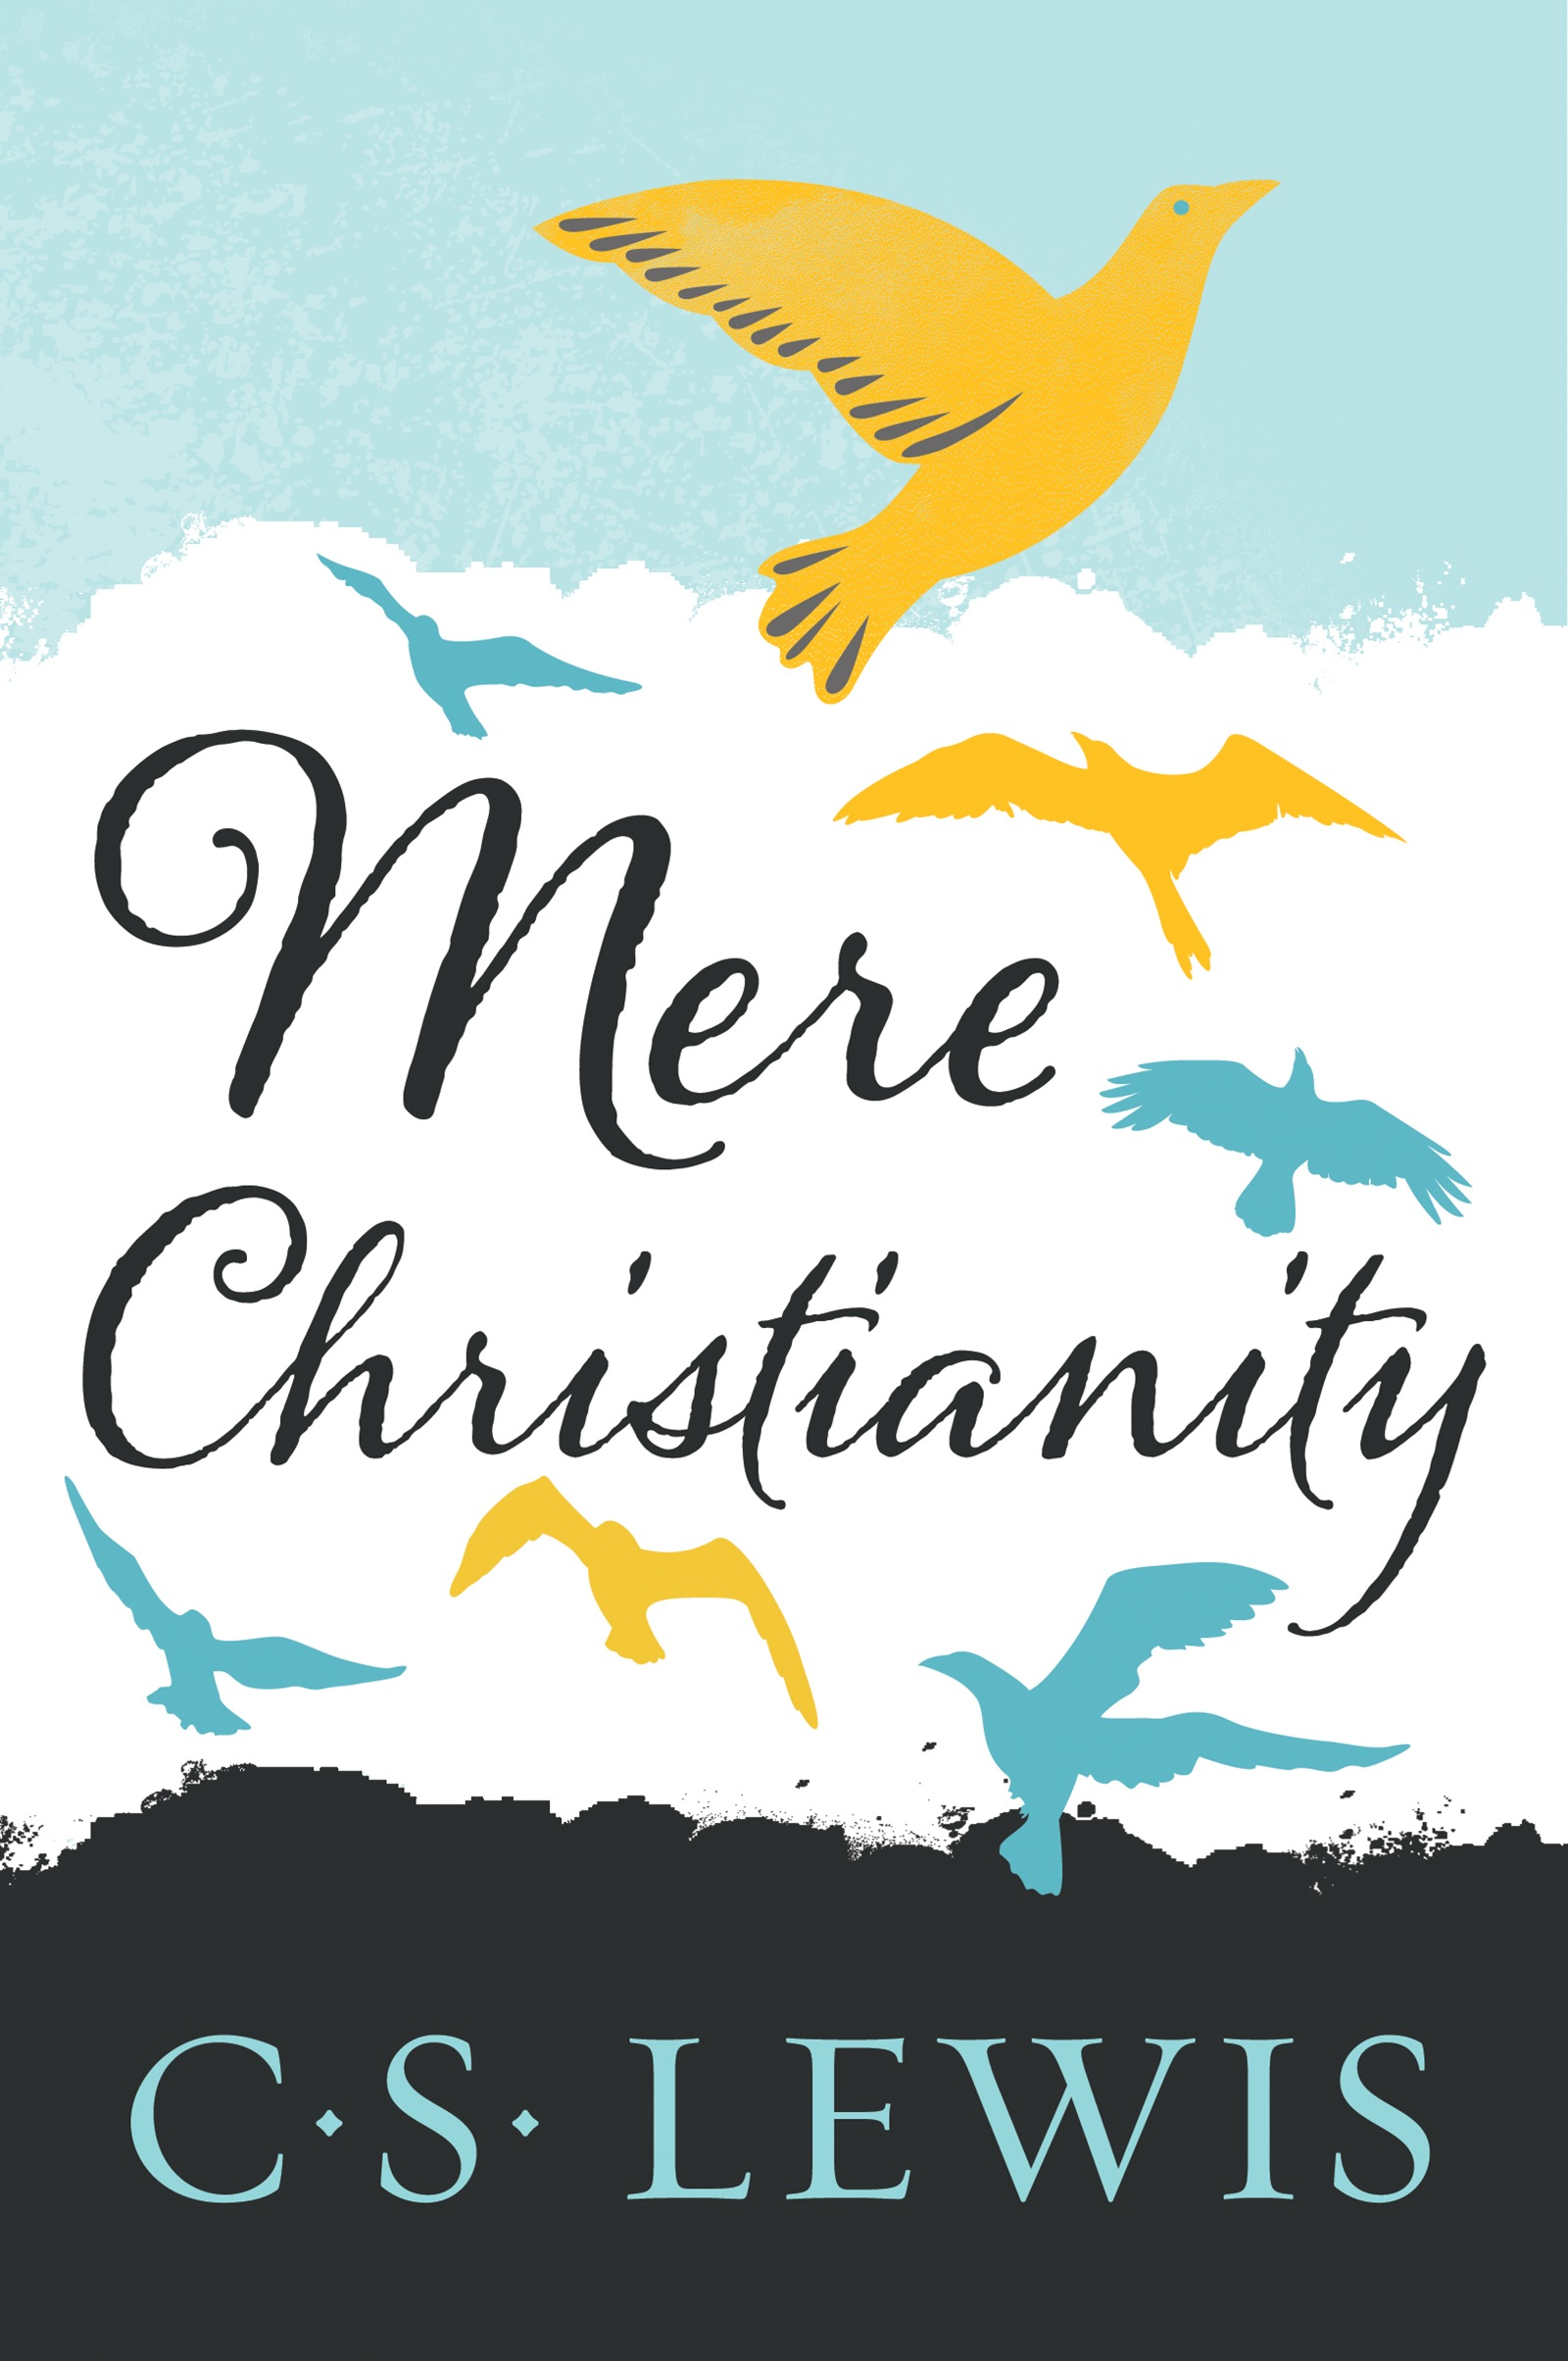 mere christianity by cs lewis book Mere christianity by c s lewis, a book summary from books at a glance.